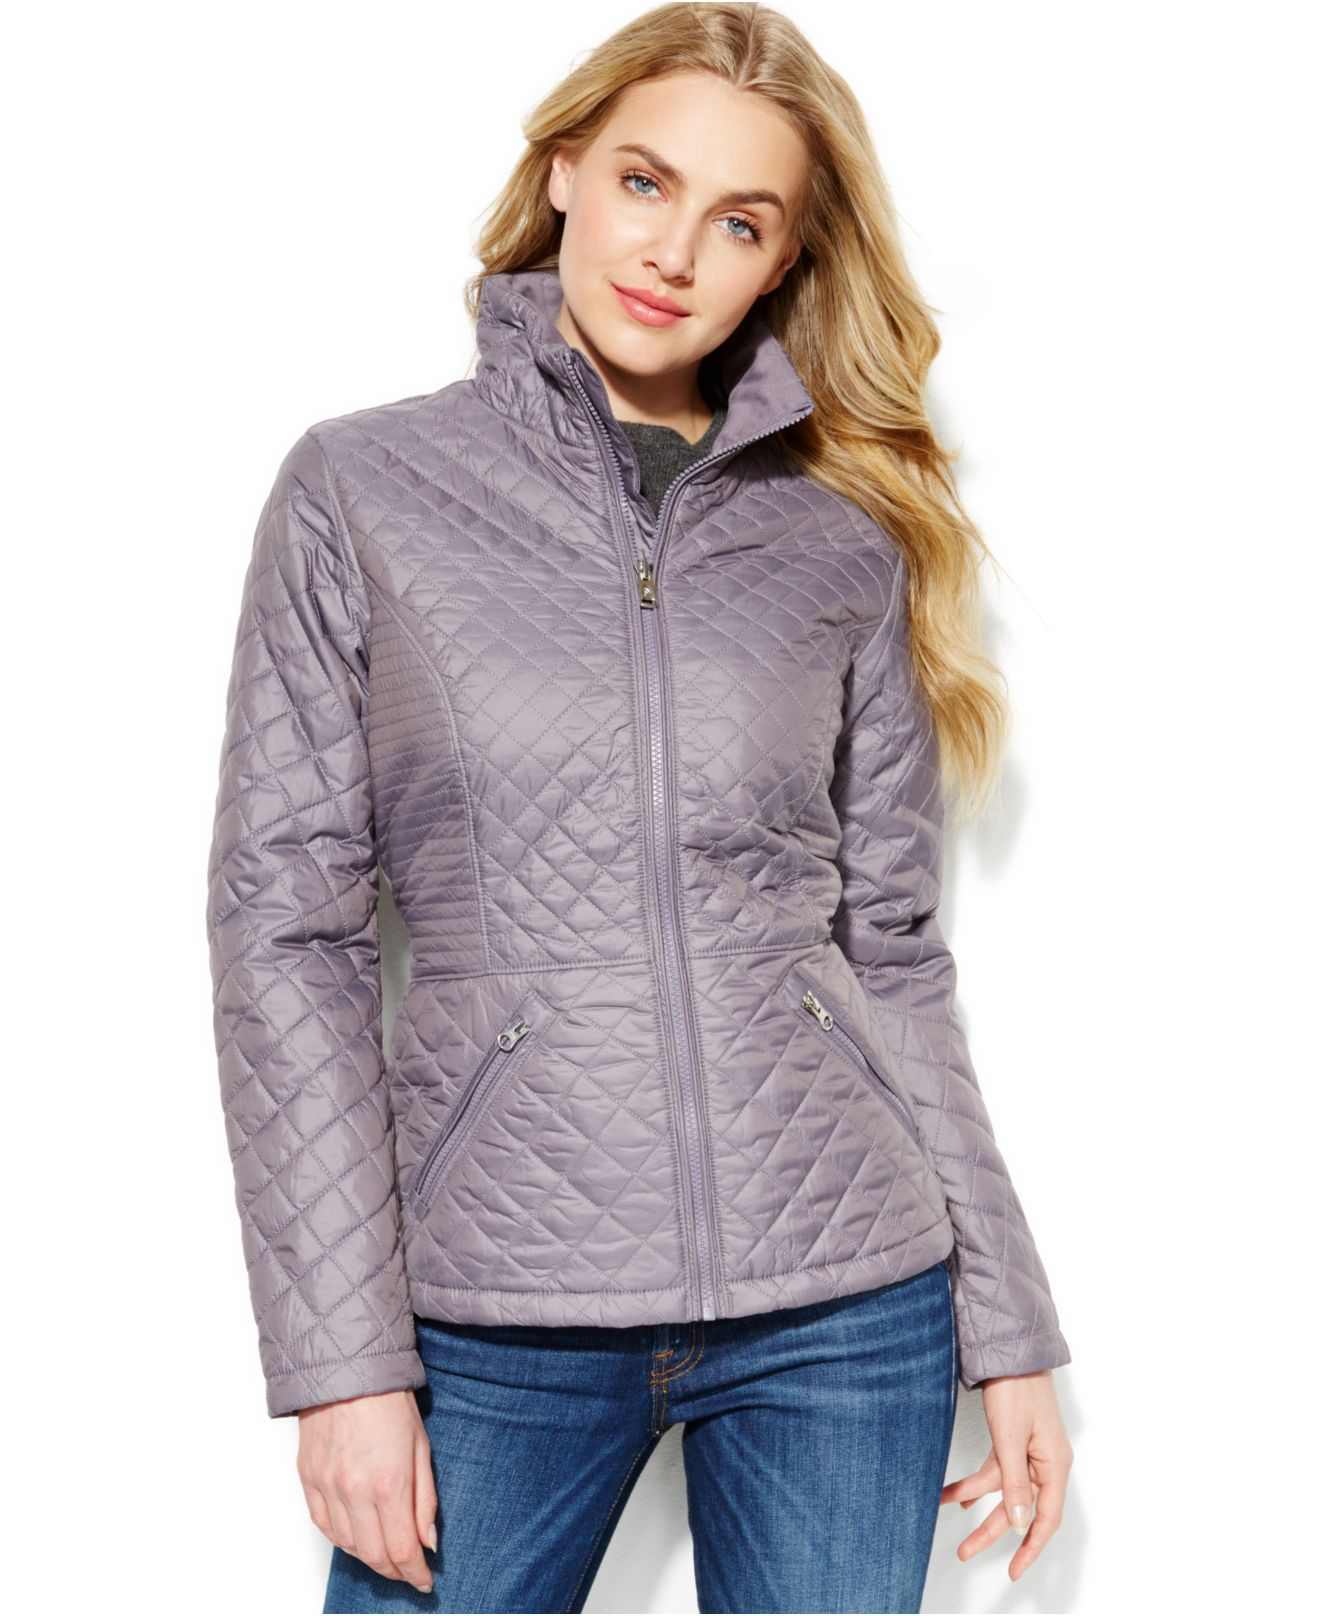 5fb0edb67302 ... coupon lyst the north face insulated luna jacket in gray 50a23 9370c